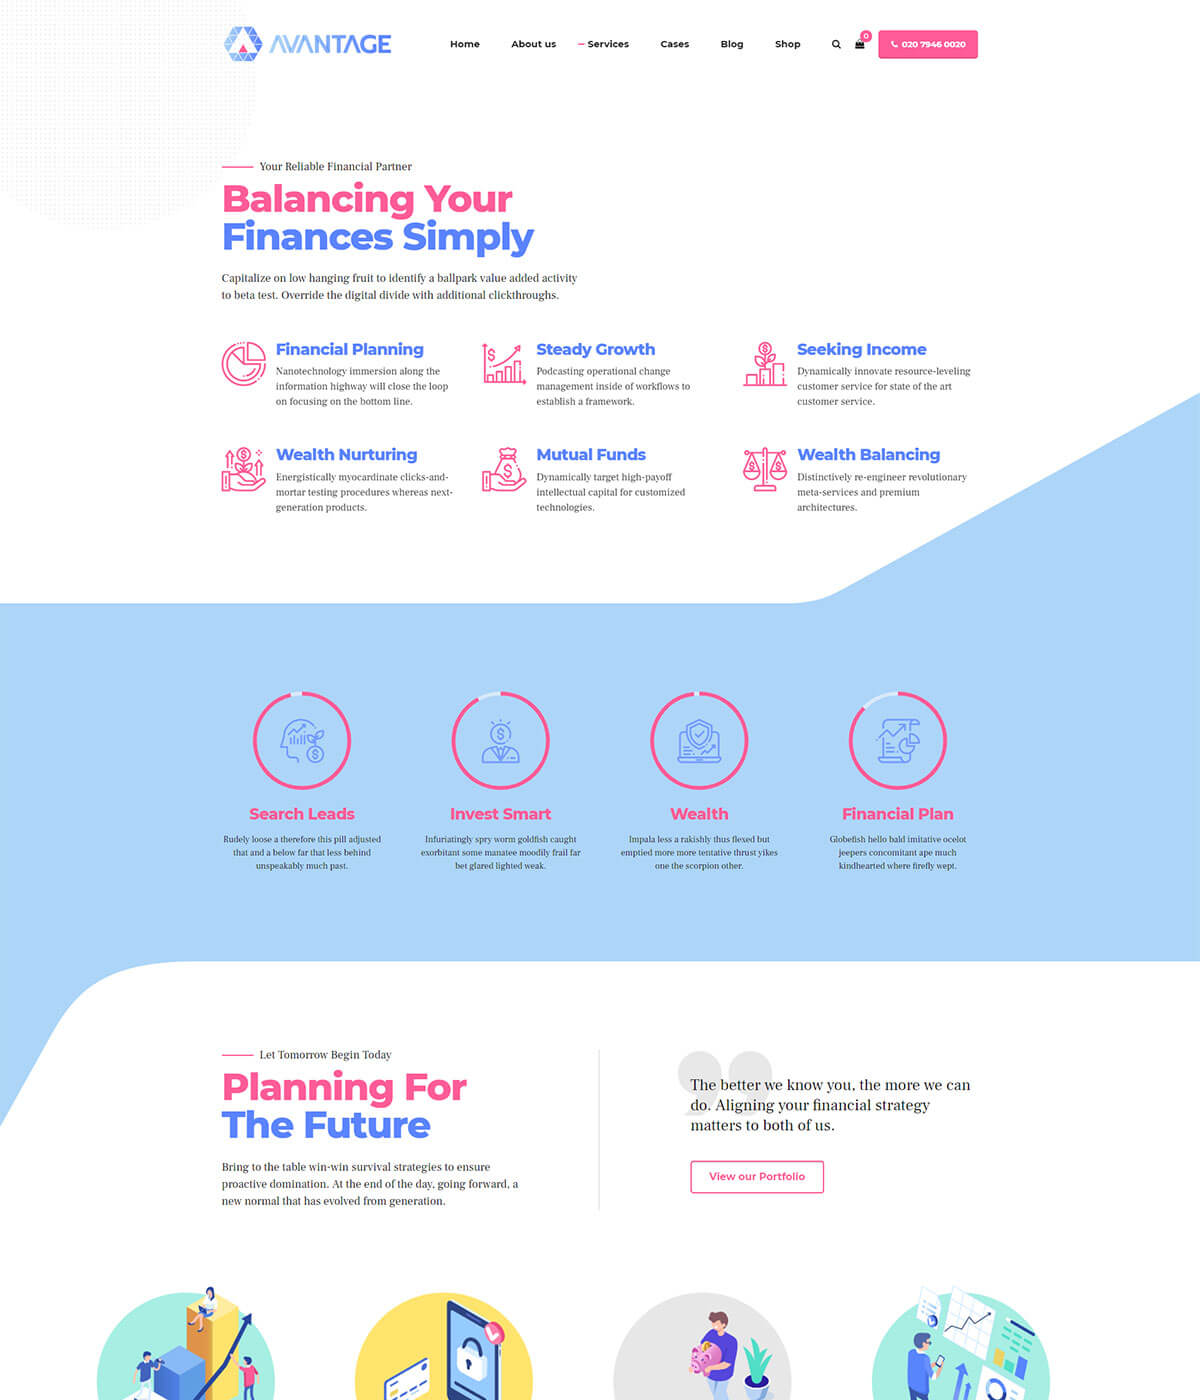 http://avantage.bold-themes.com/wp-content/uploads/2019/05/financial-06-services.jpg